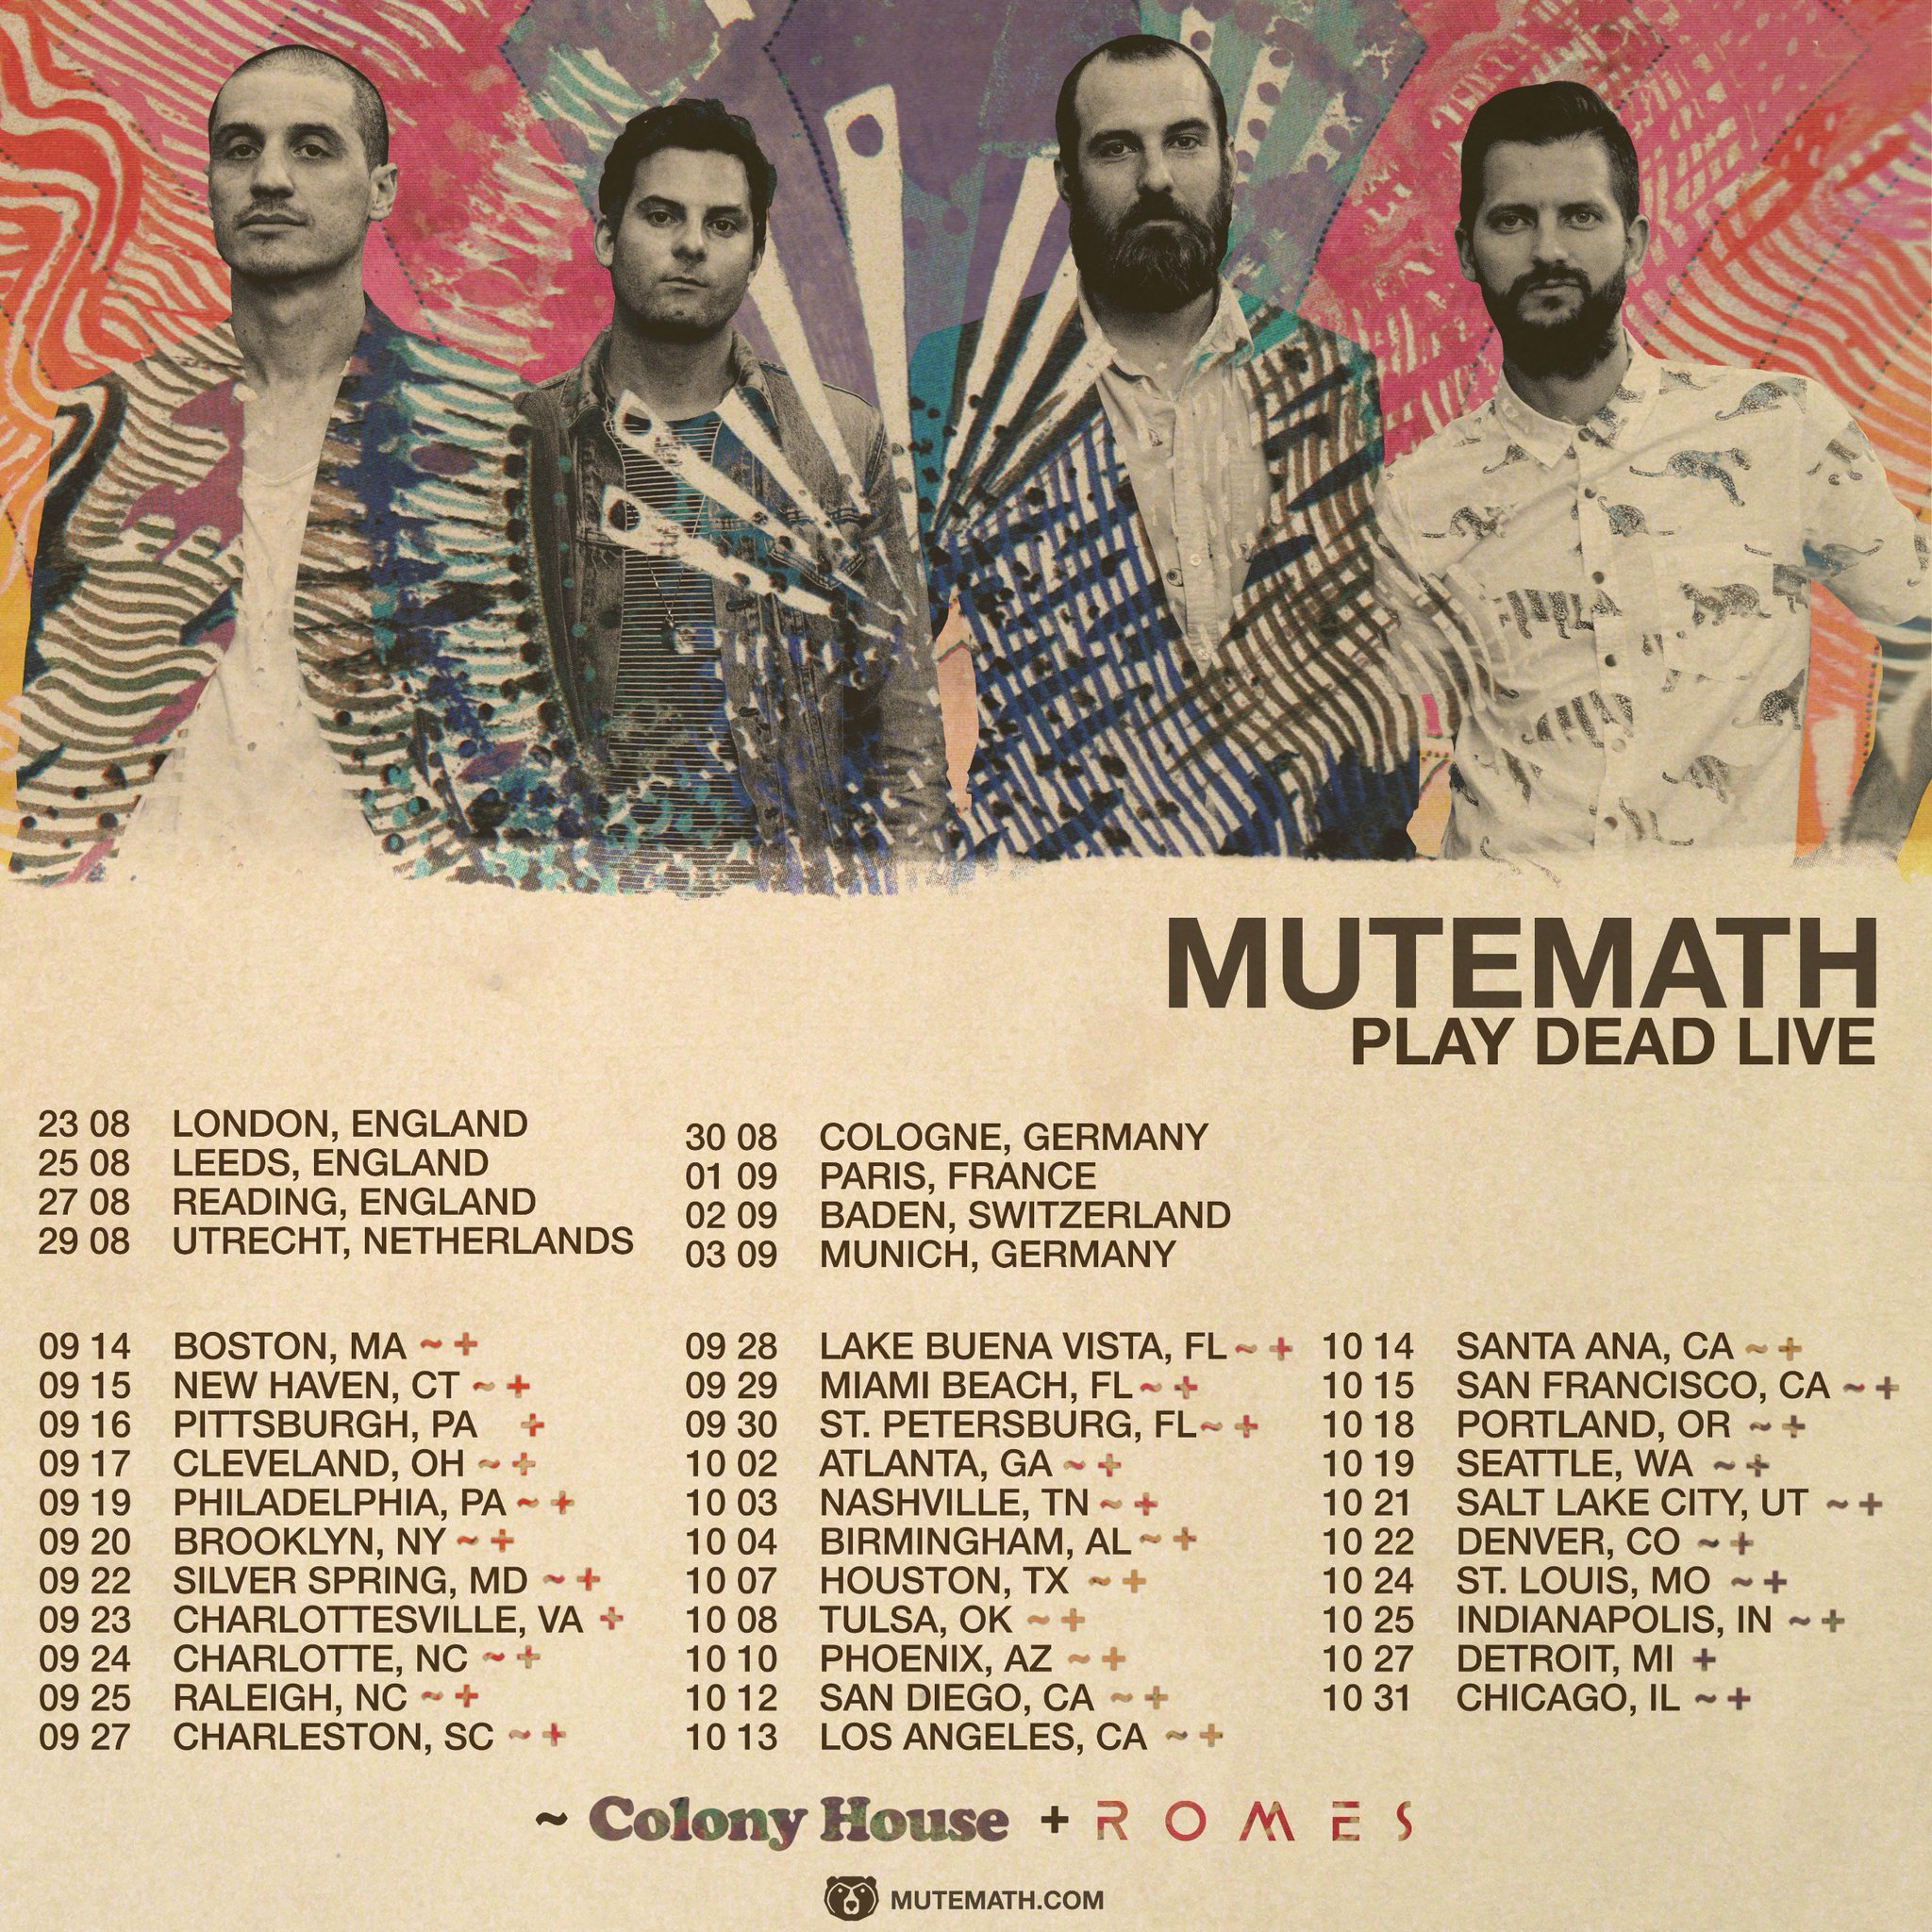 Fall Tour in support and they will be bringing Colony House and ROMES  along for the ride  You can check out the dates below and buy your tickets  here. Colony House  ROMES to tour with Mutemath   Stitched Sound